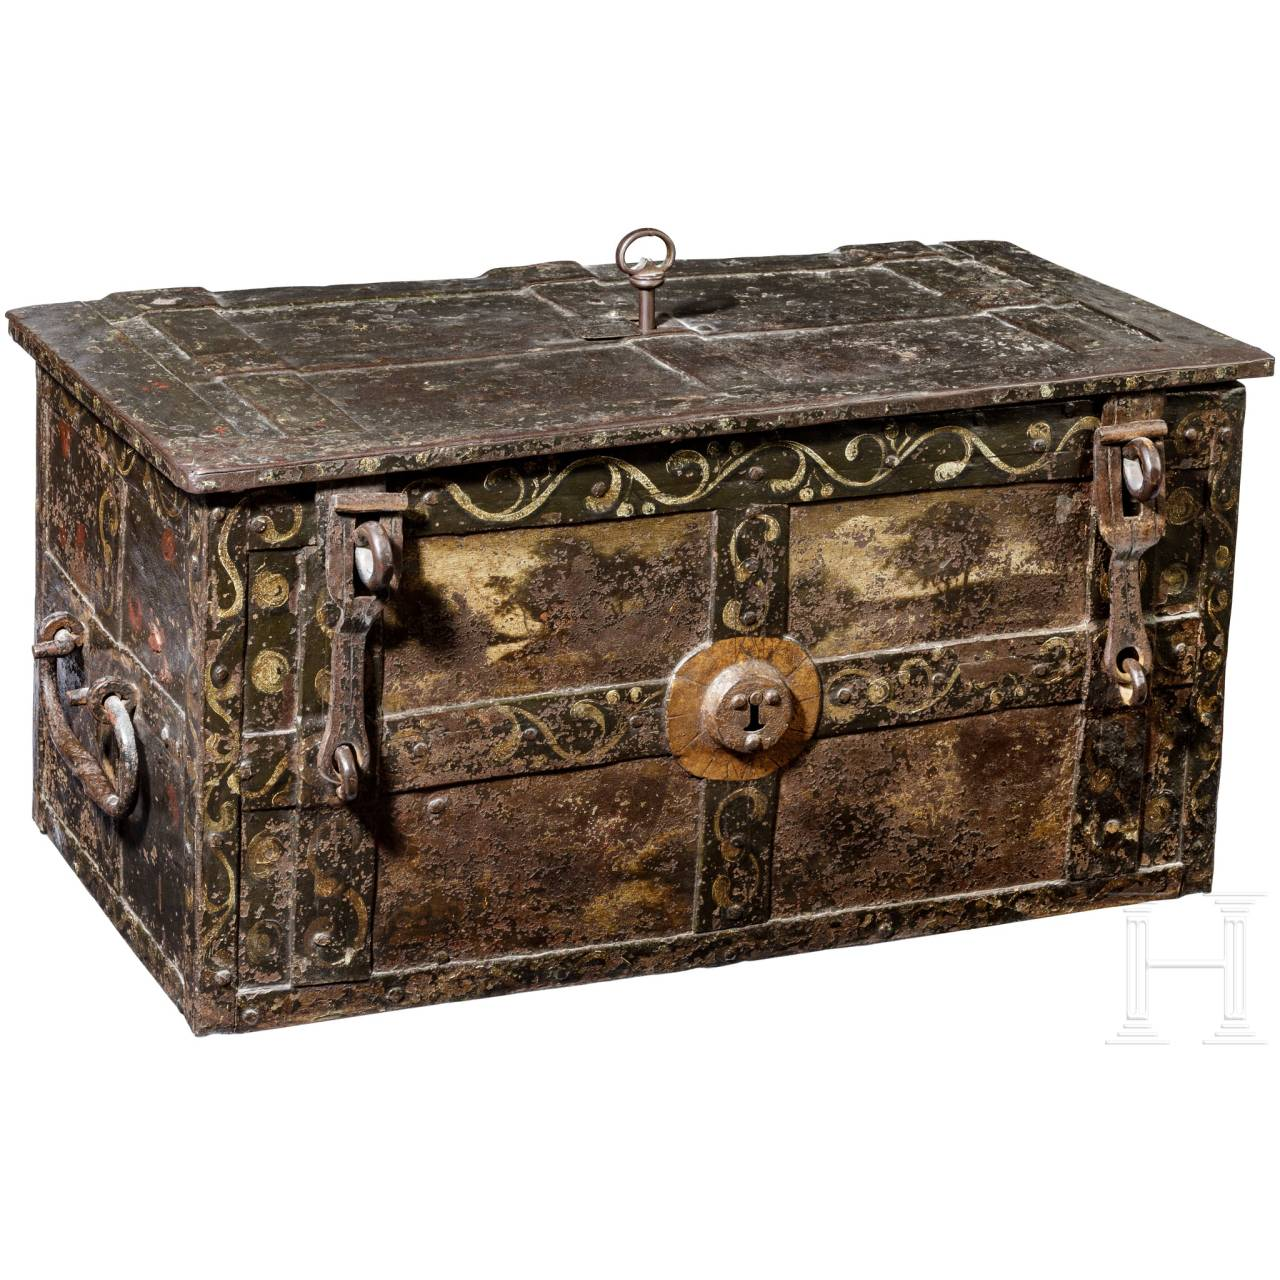 A southern German Baroque armada chest with paintwork, 17th century